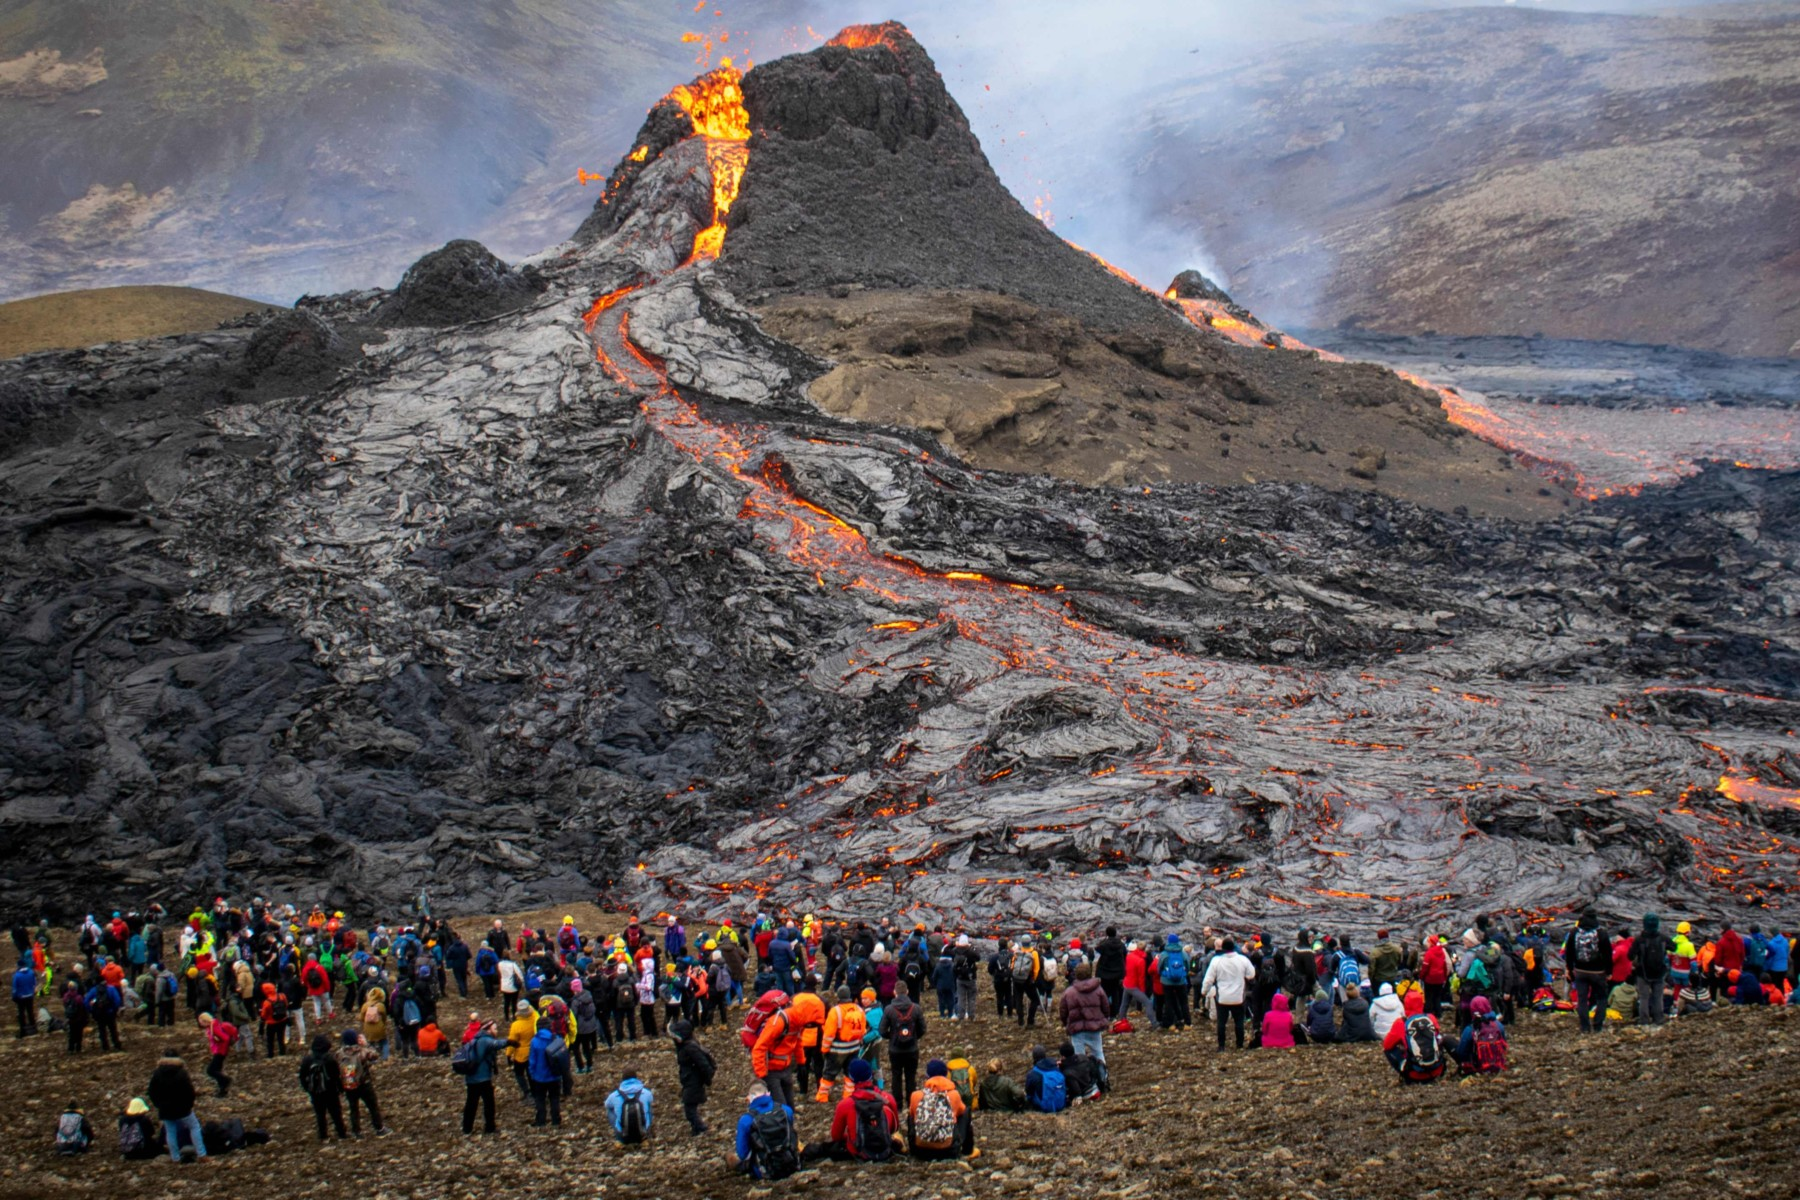 A stream of lava flows down a mountain while a group of people stand and watch from a distance.